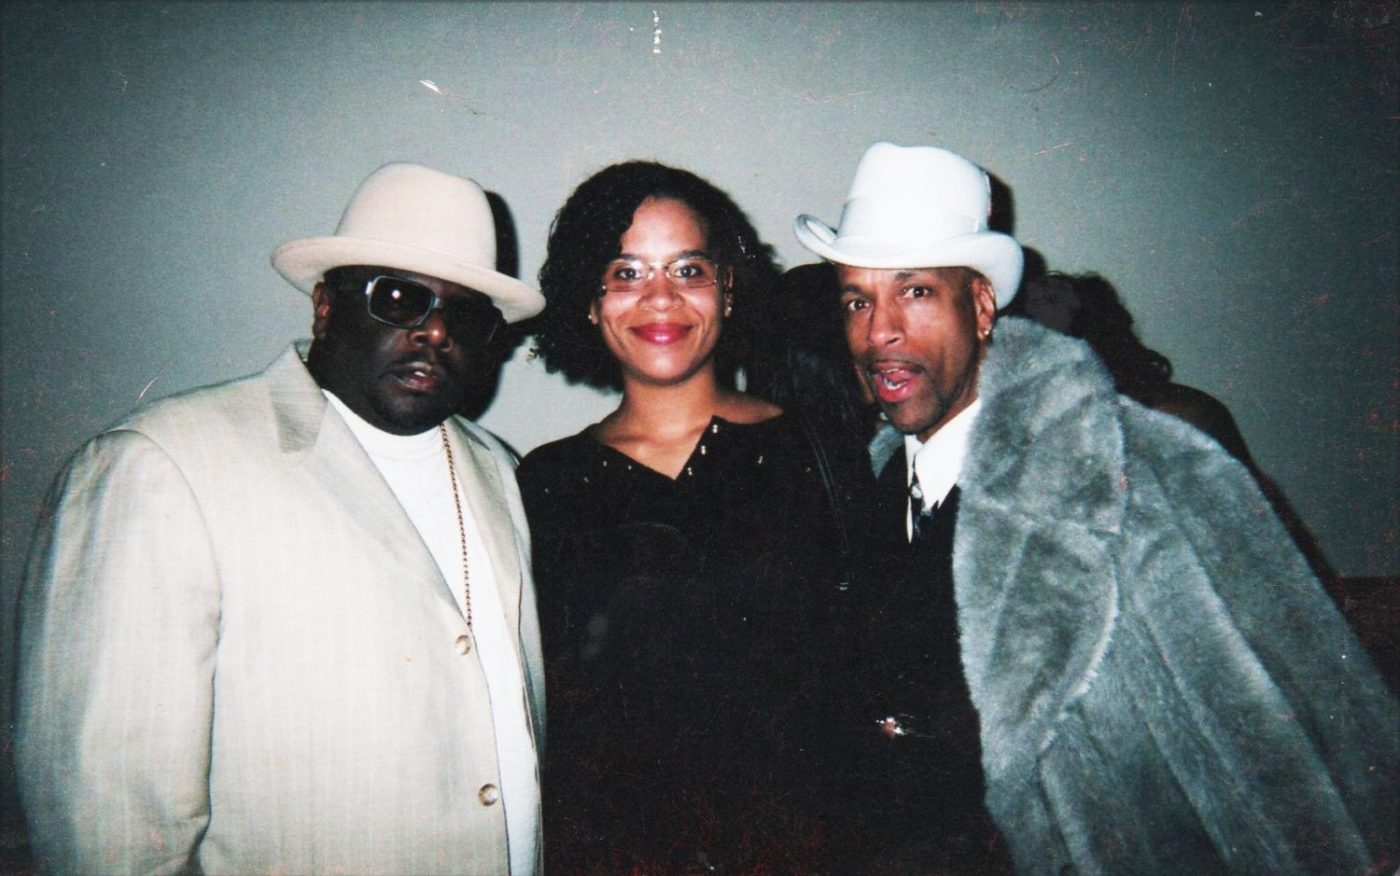 Cedric-the-Entertainer-Cynthia-Jeff-Ace-Walker-at-Super-Bowl-Party-2005-1400x876, No warning shot, Behind Enemy Lines